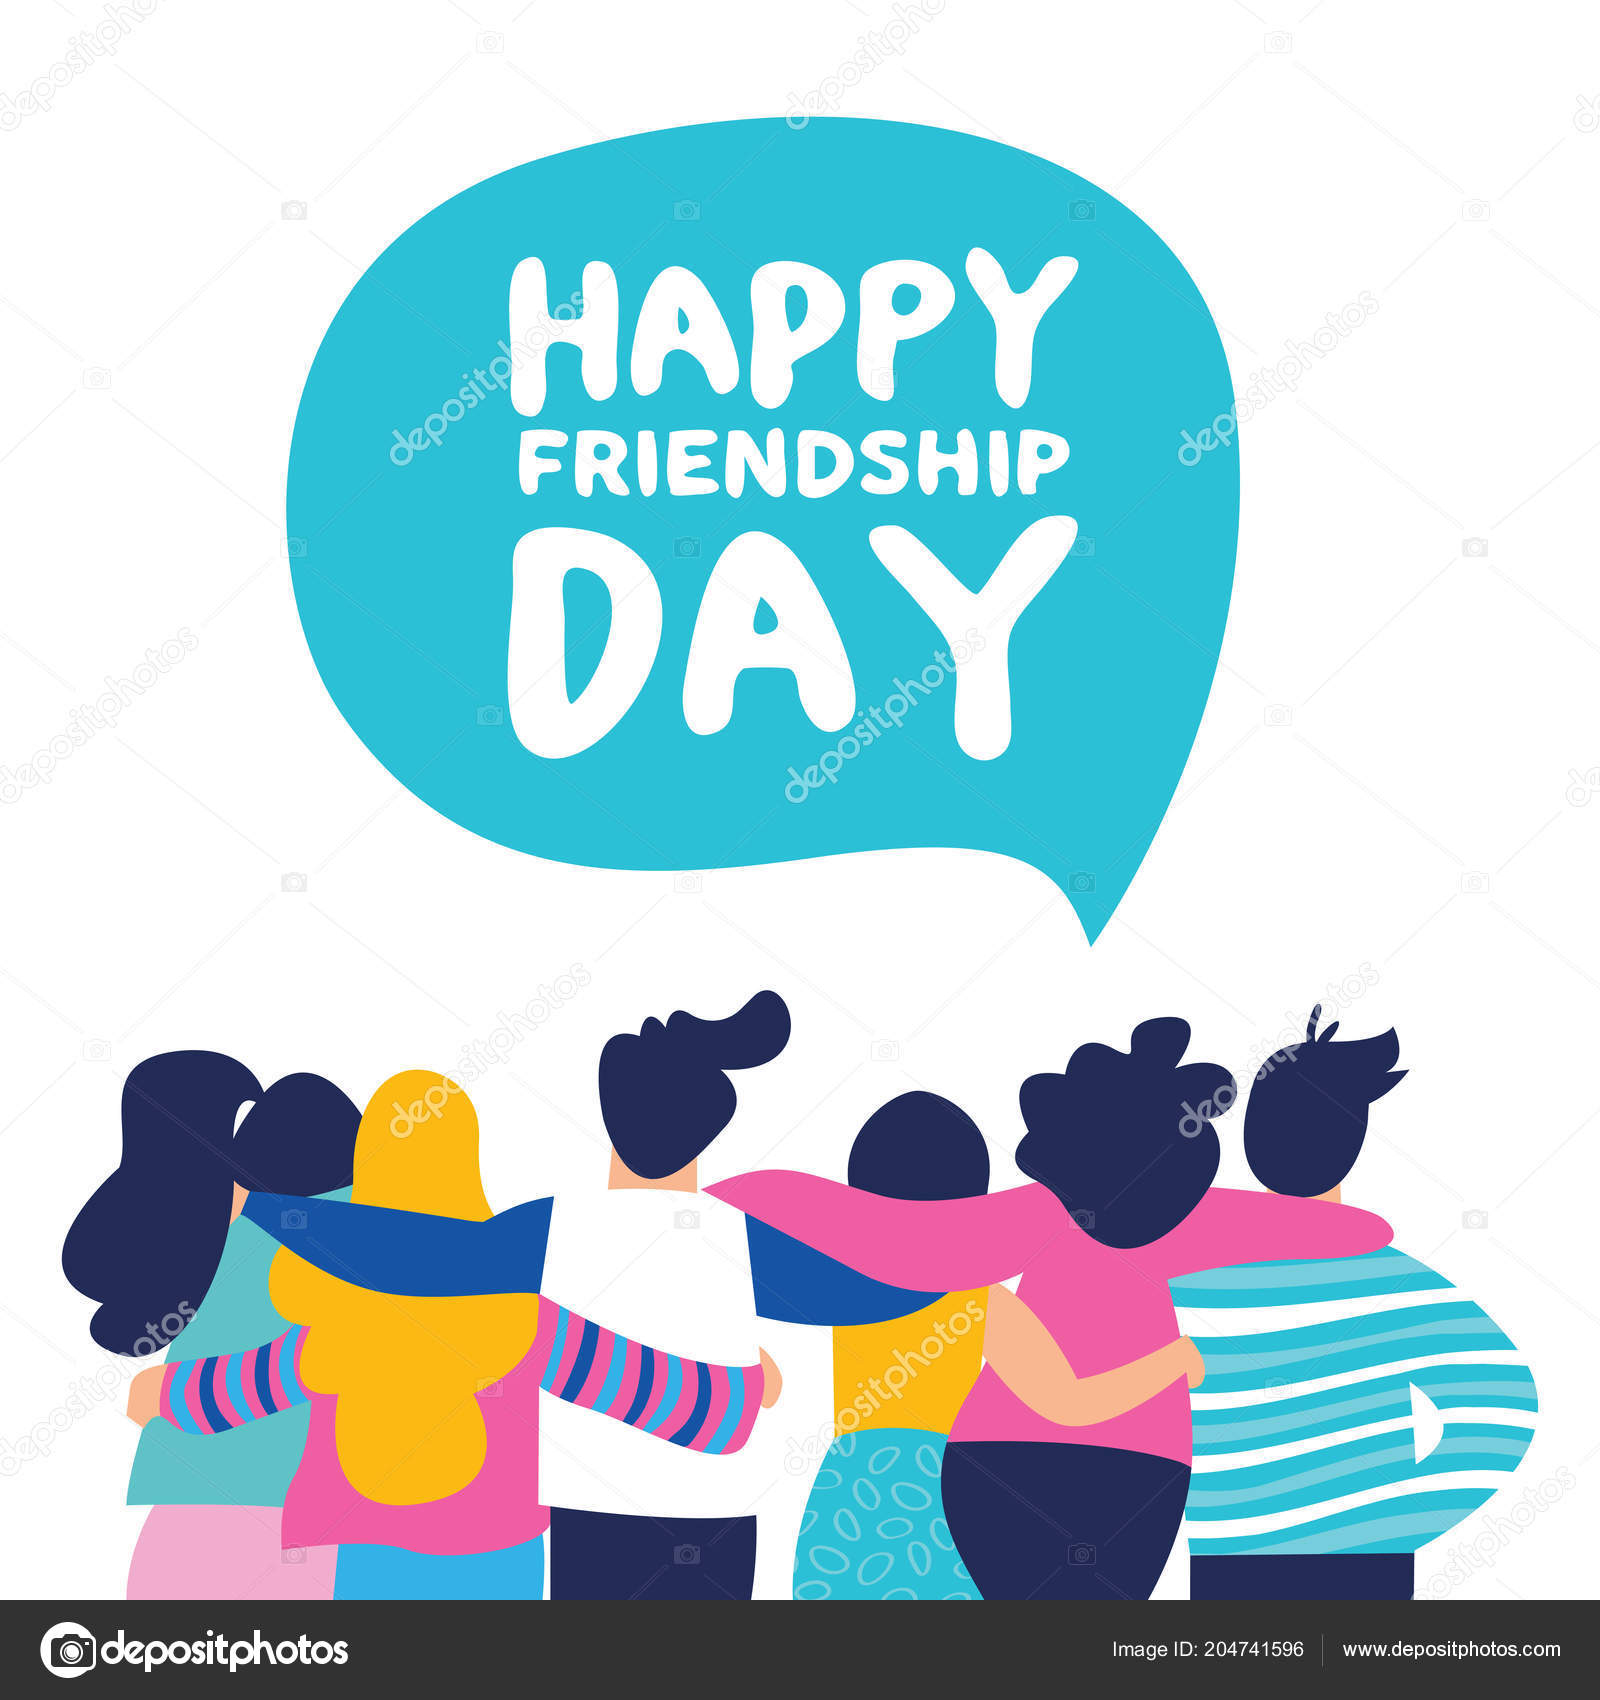 Happy Friendship Day Greeting Card Diverse Friend Group People